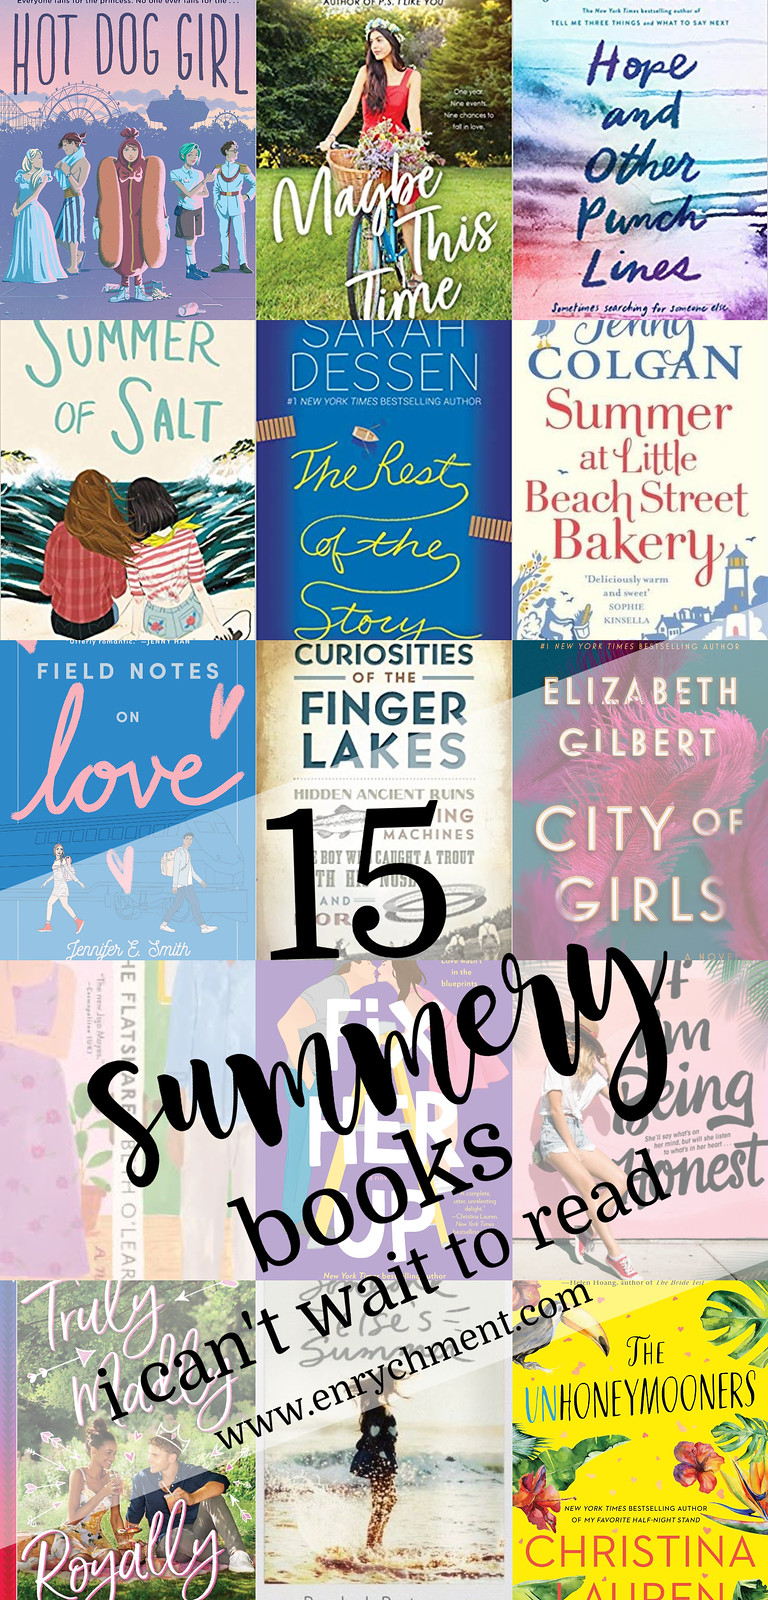 15 Summery Books I Can't Wait to Read! | www.enrychment.com